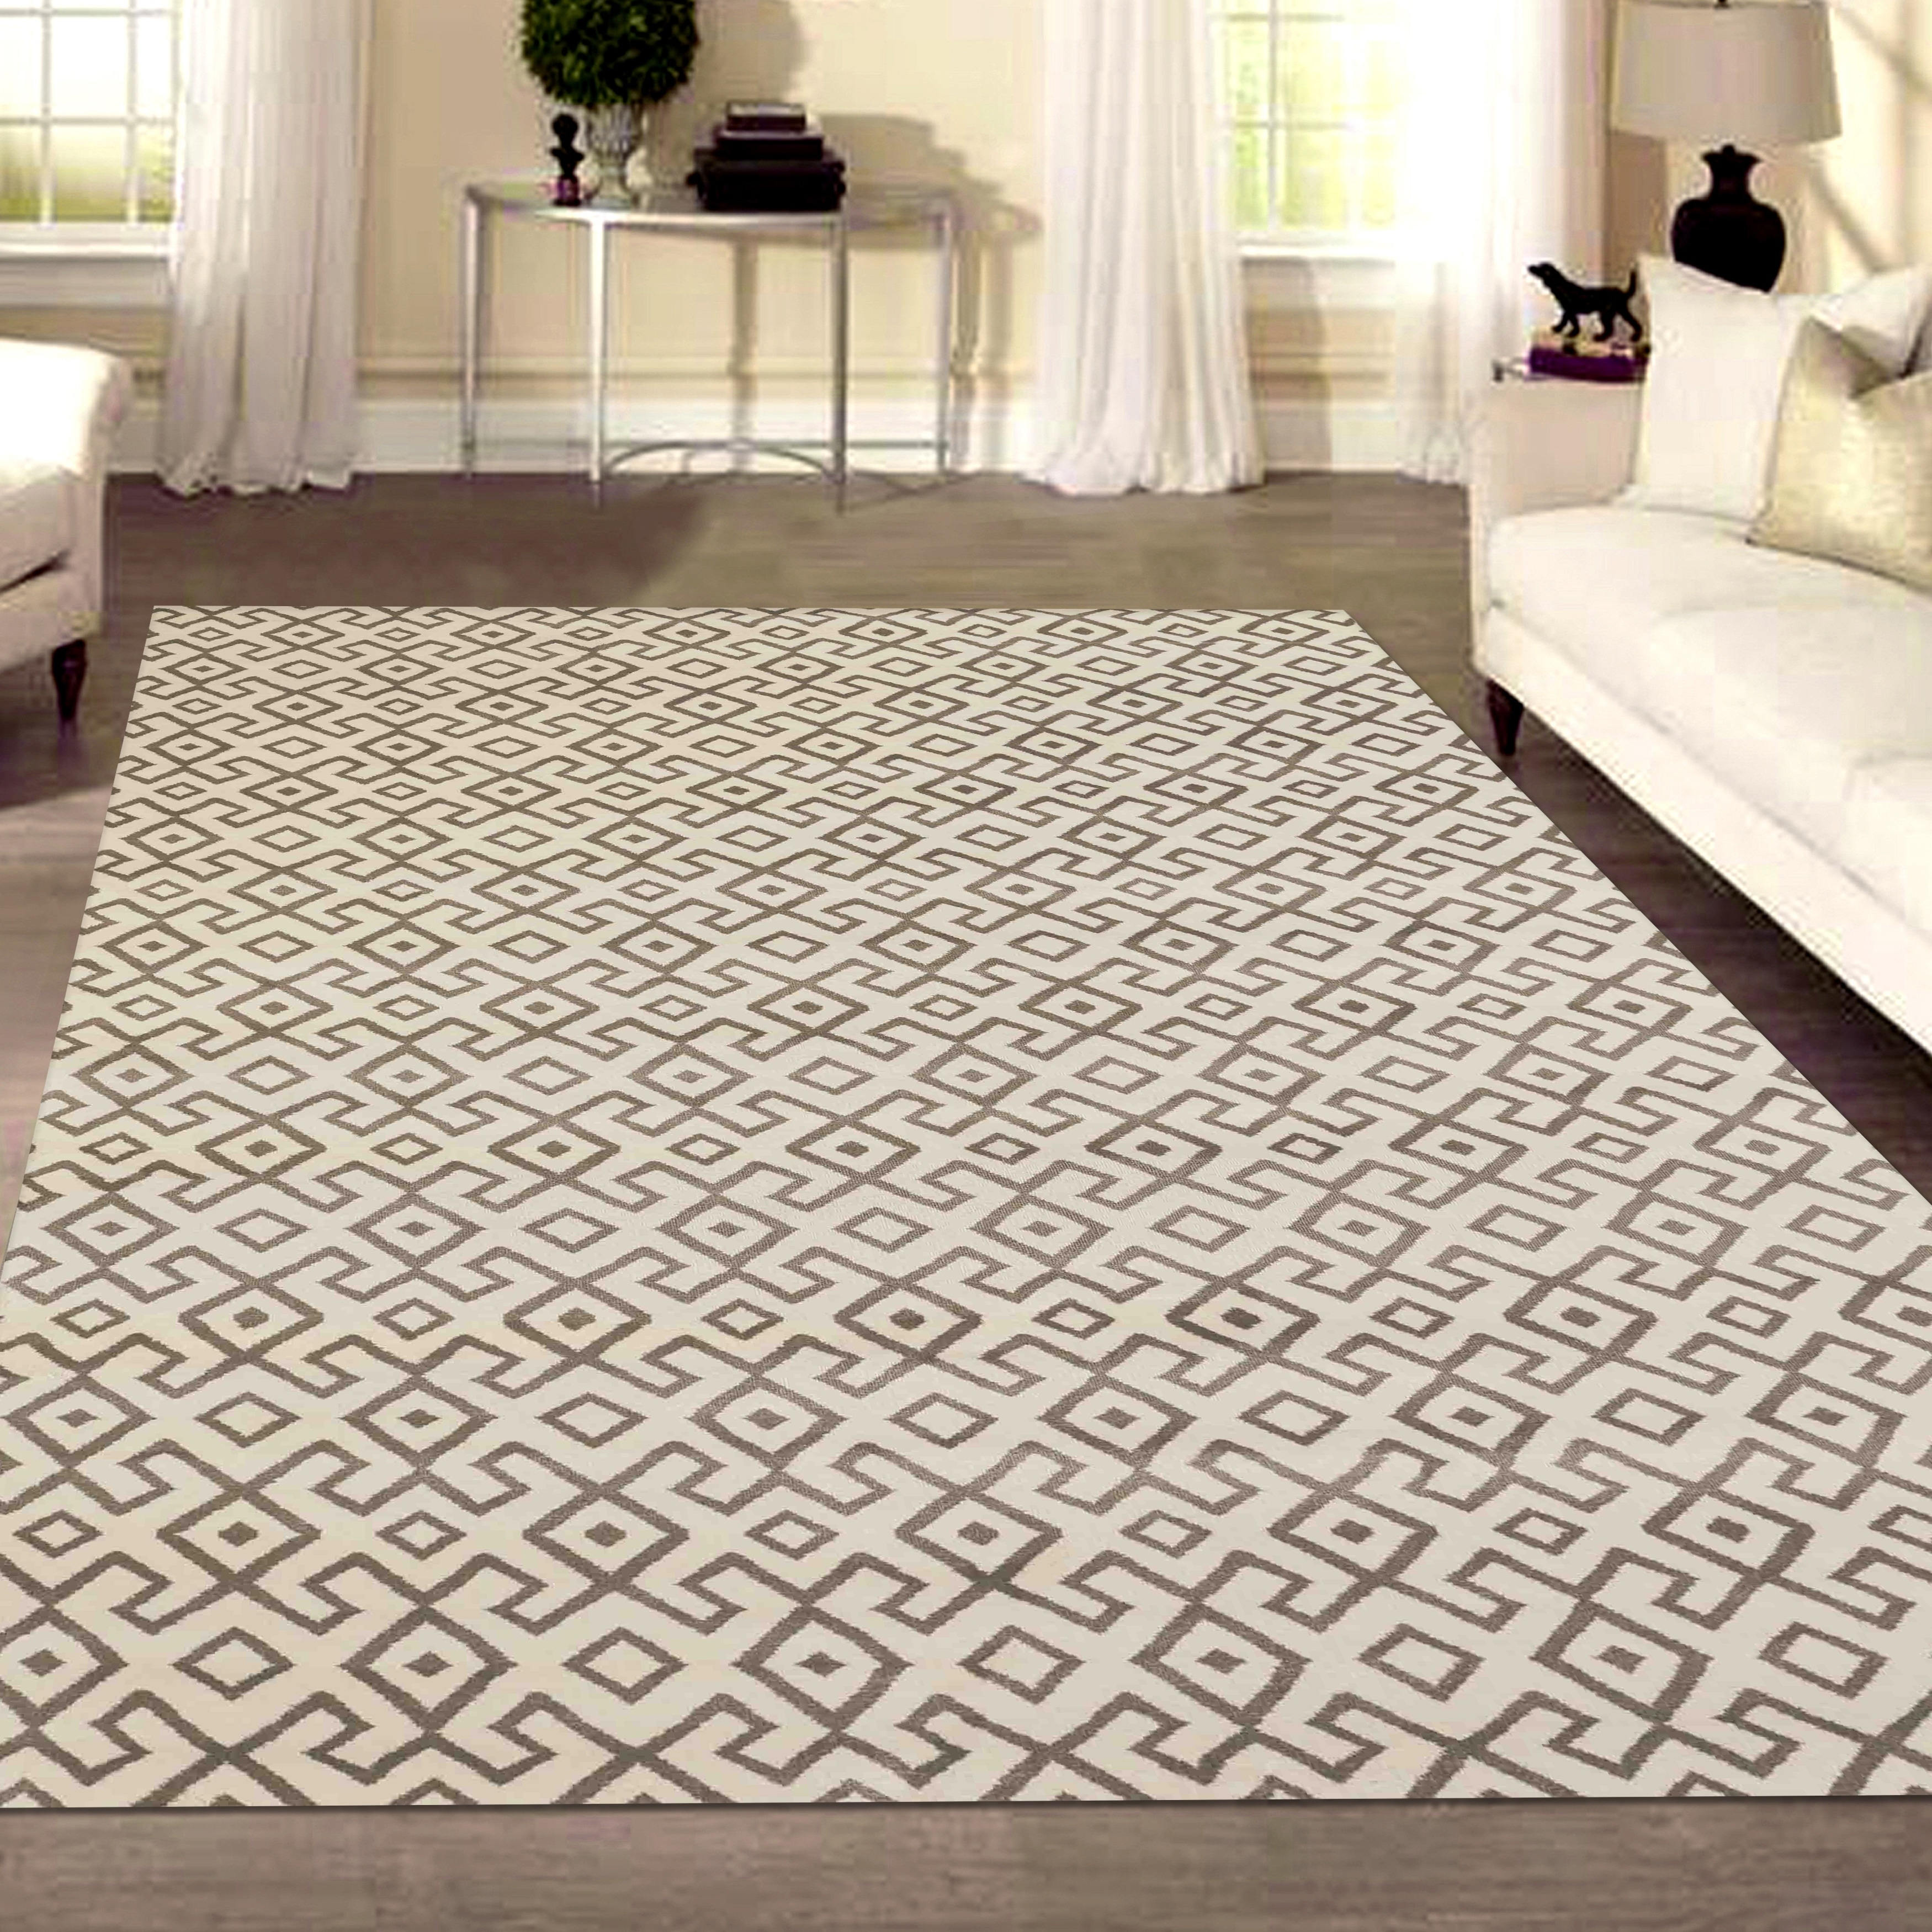 Bronte Disc Area Rug - 53 x 73 (53 x 73 - Ivory)